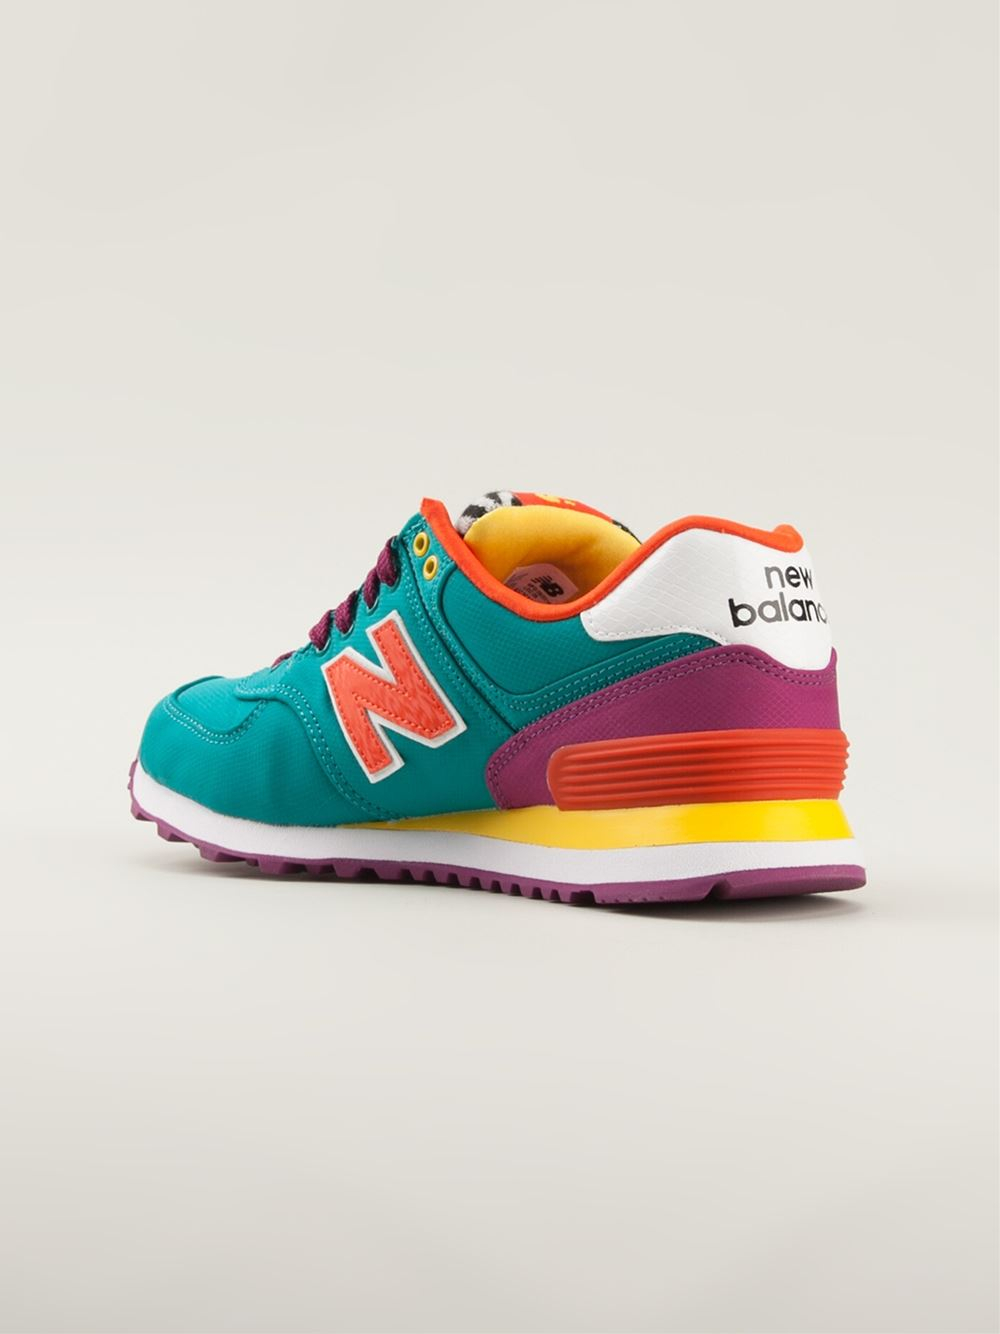 New Balance Trainers - multicolor GhBuhV3W